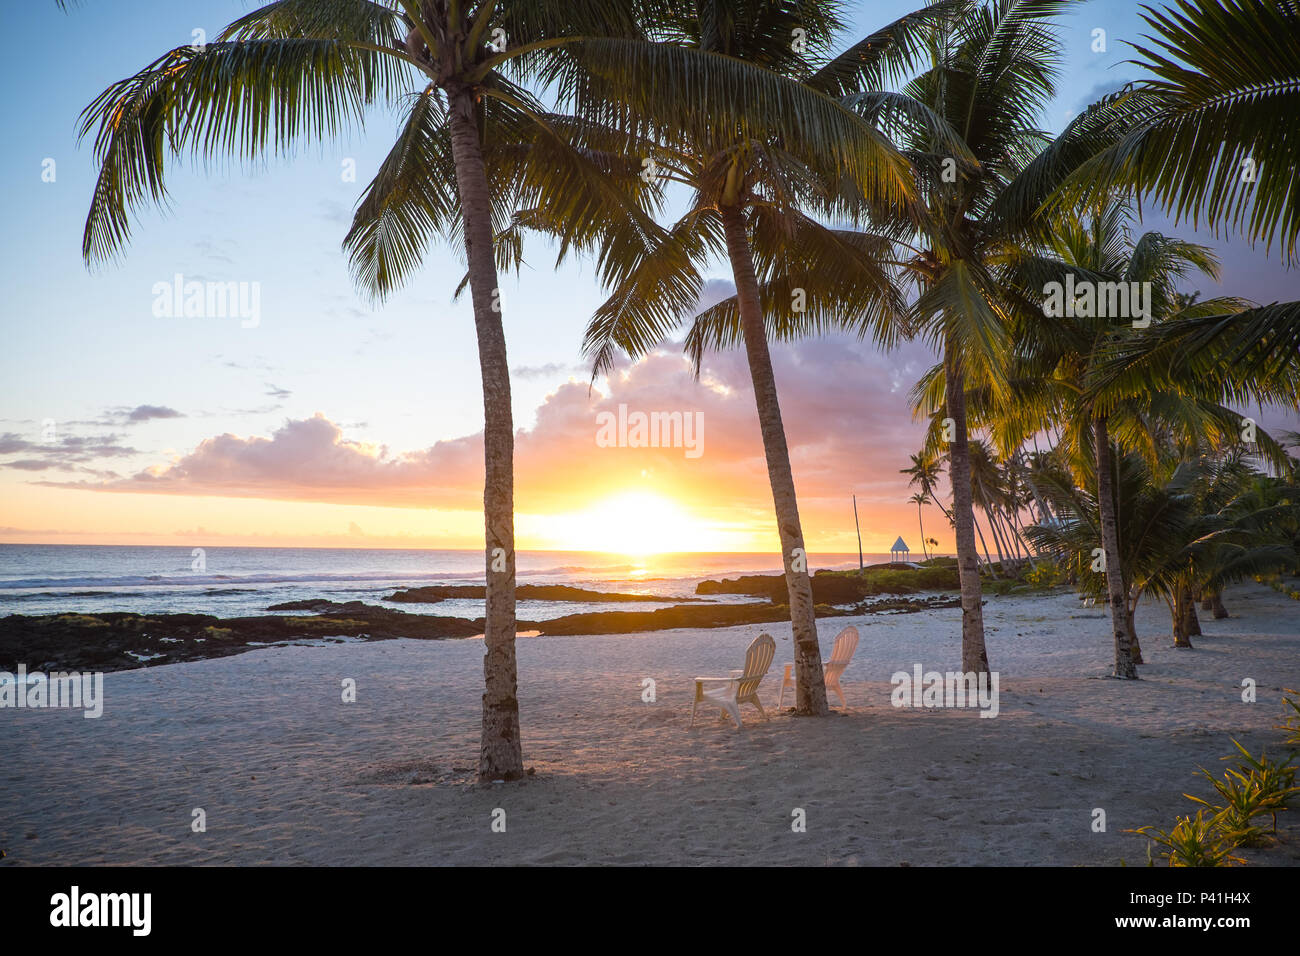 Two deck chairs under palm trees at sunset on an empty beach at Lefaga, Matautu, Upolu Island, Western Samoa, South Pacific Stock Photo